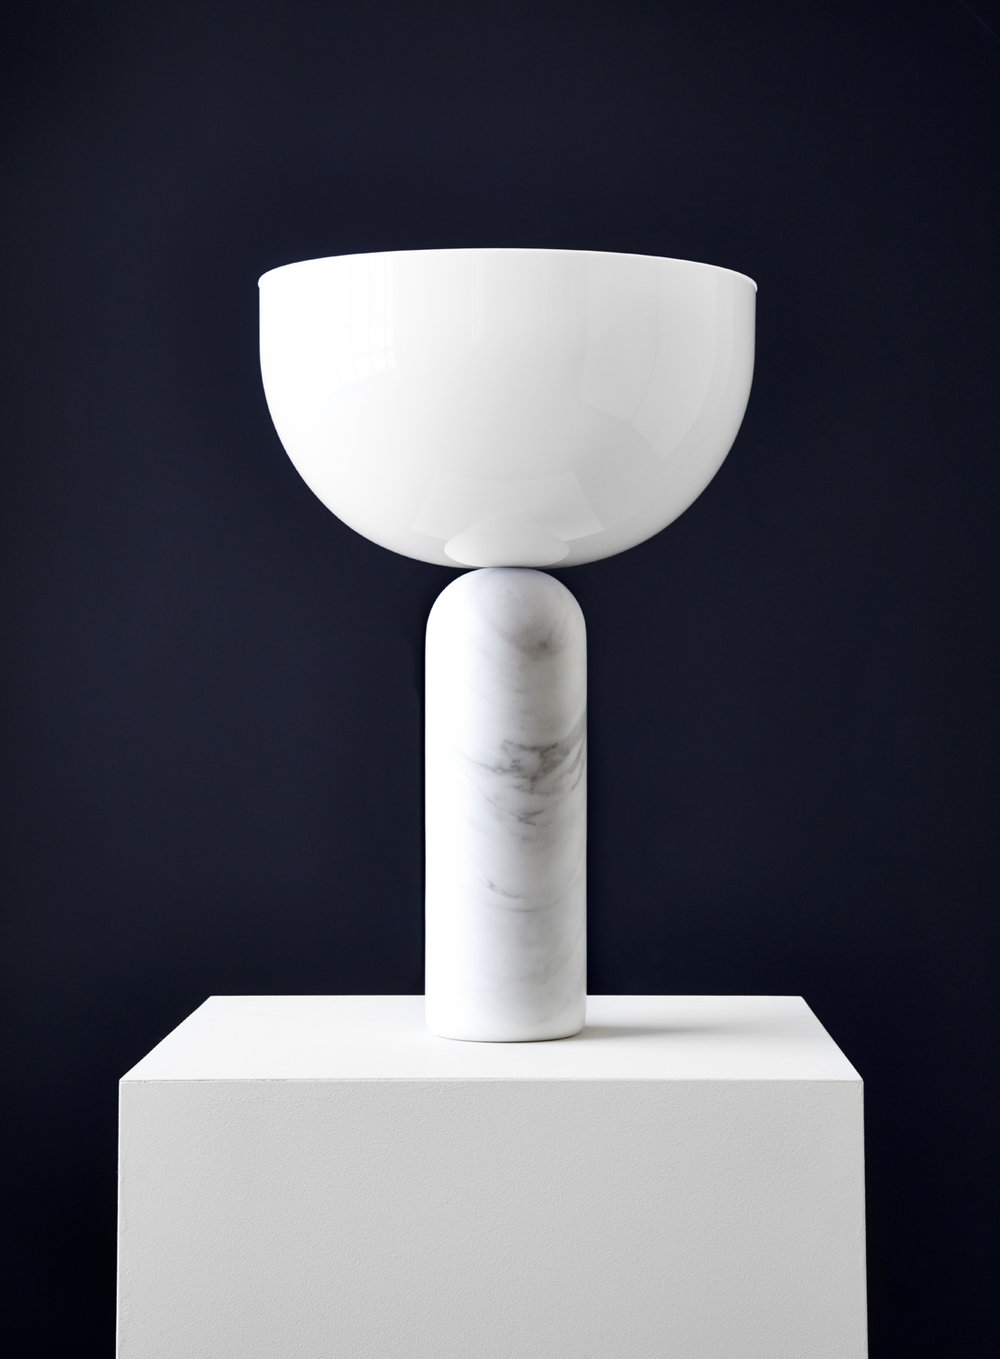 Kizu Table Lamp, Blue Picture, Image, New Works, Low Res.jpg